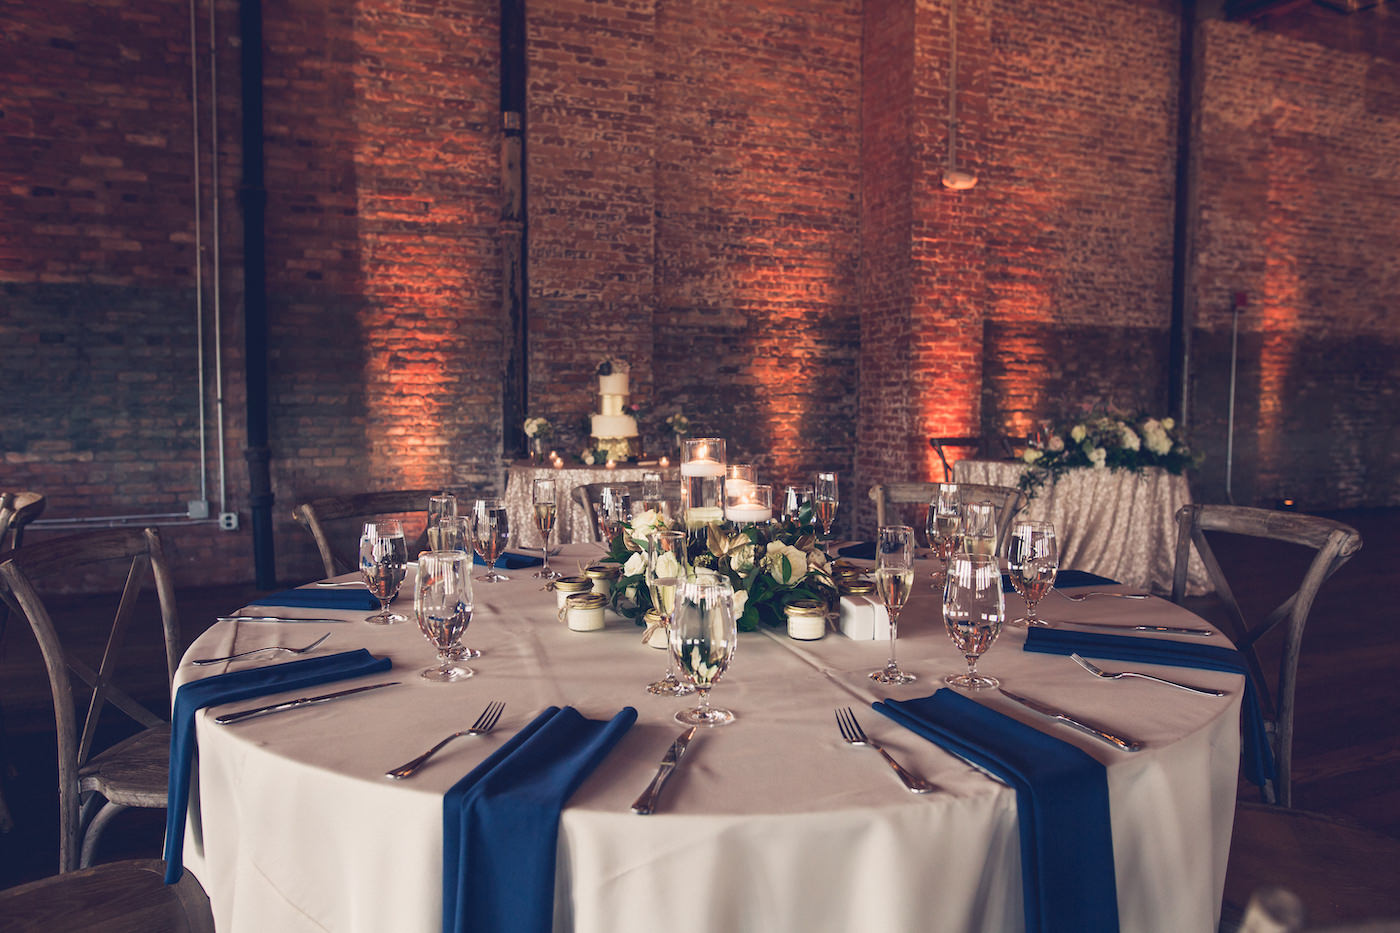 Tampa Wedding Reception Tables With Cobalt Blue Napkins And Greenery And White Floral Floating Candle Centerpieces Brick Walls With Amber Uplighting Marry Me Tampa Bay Local Real Wedding Inspiration